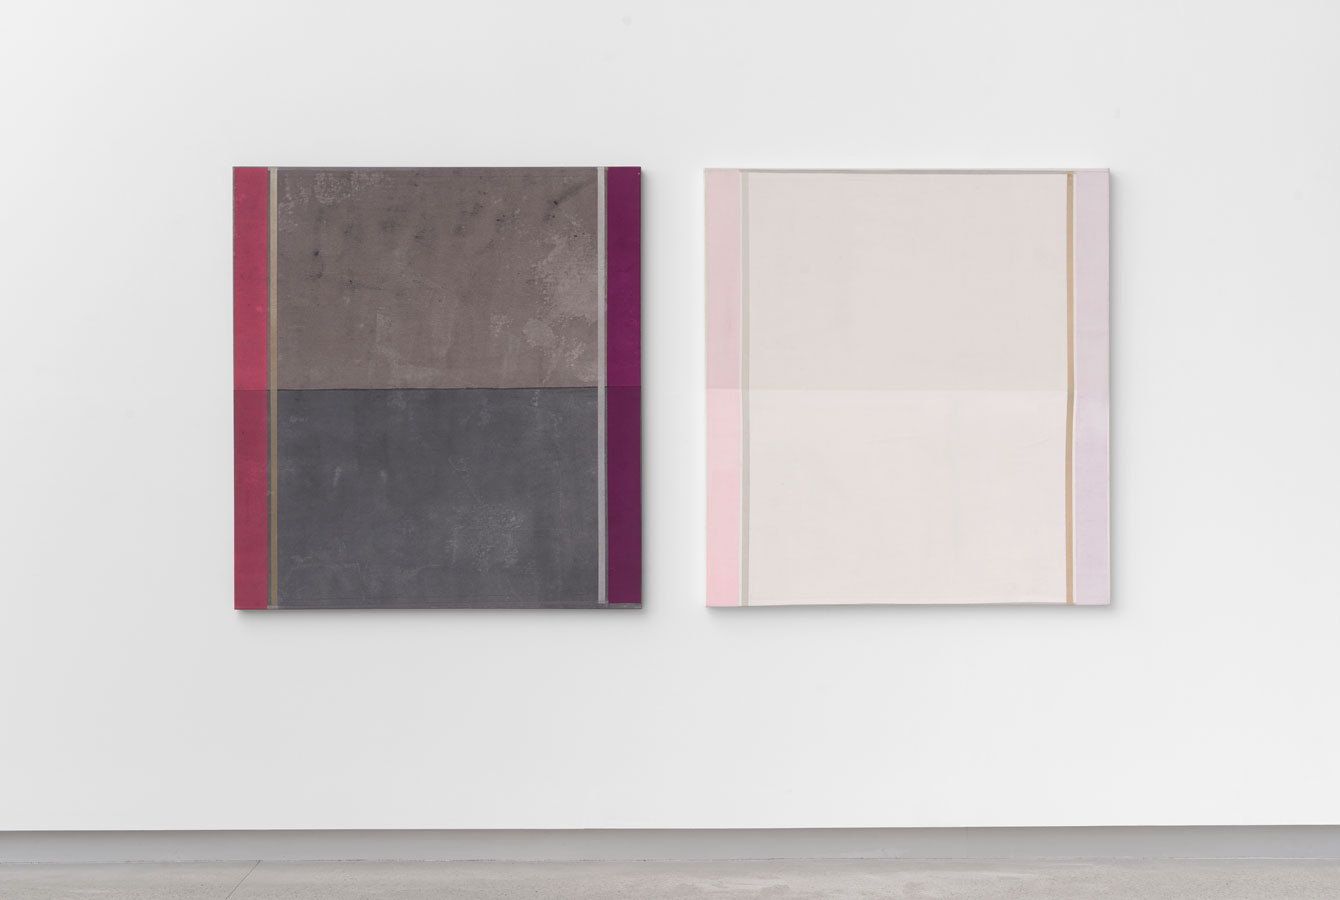 'Duo–Plexes' (diptych), 2015<br>Acrylic staining, pigments, glitter, pencil and holographic paint on canvas<br>137 x 126 x 5 cm each panel